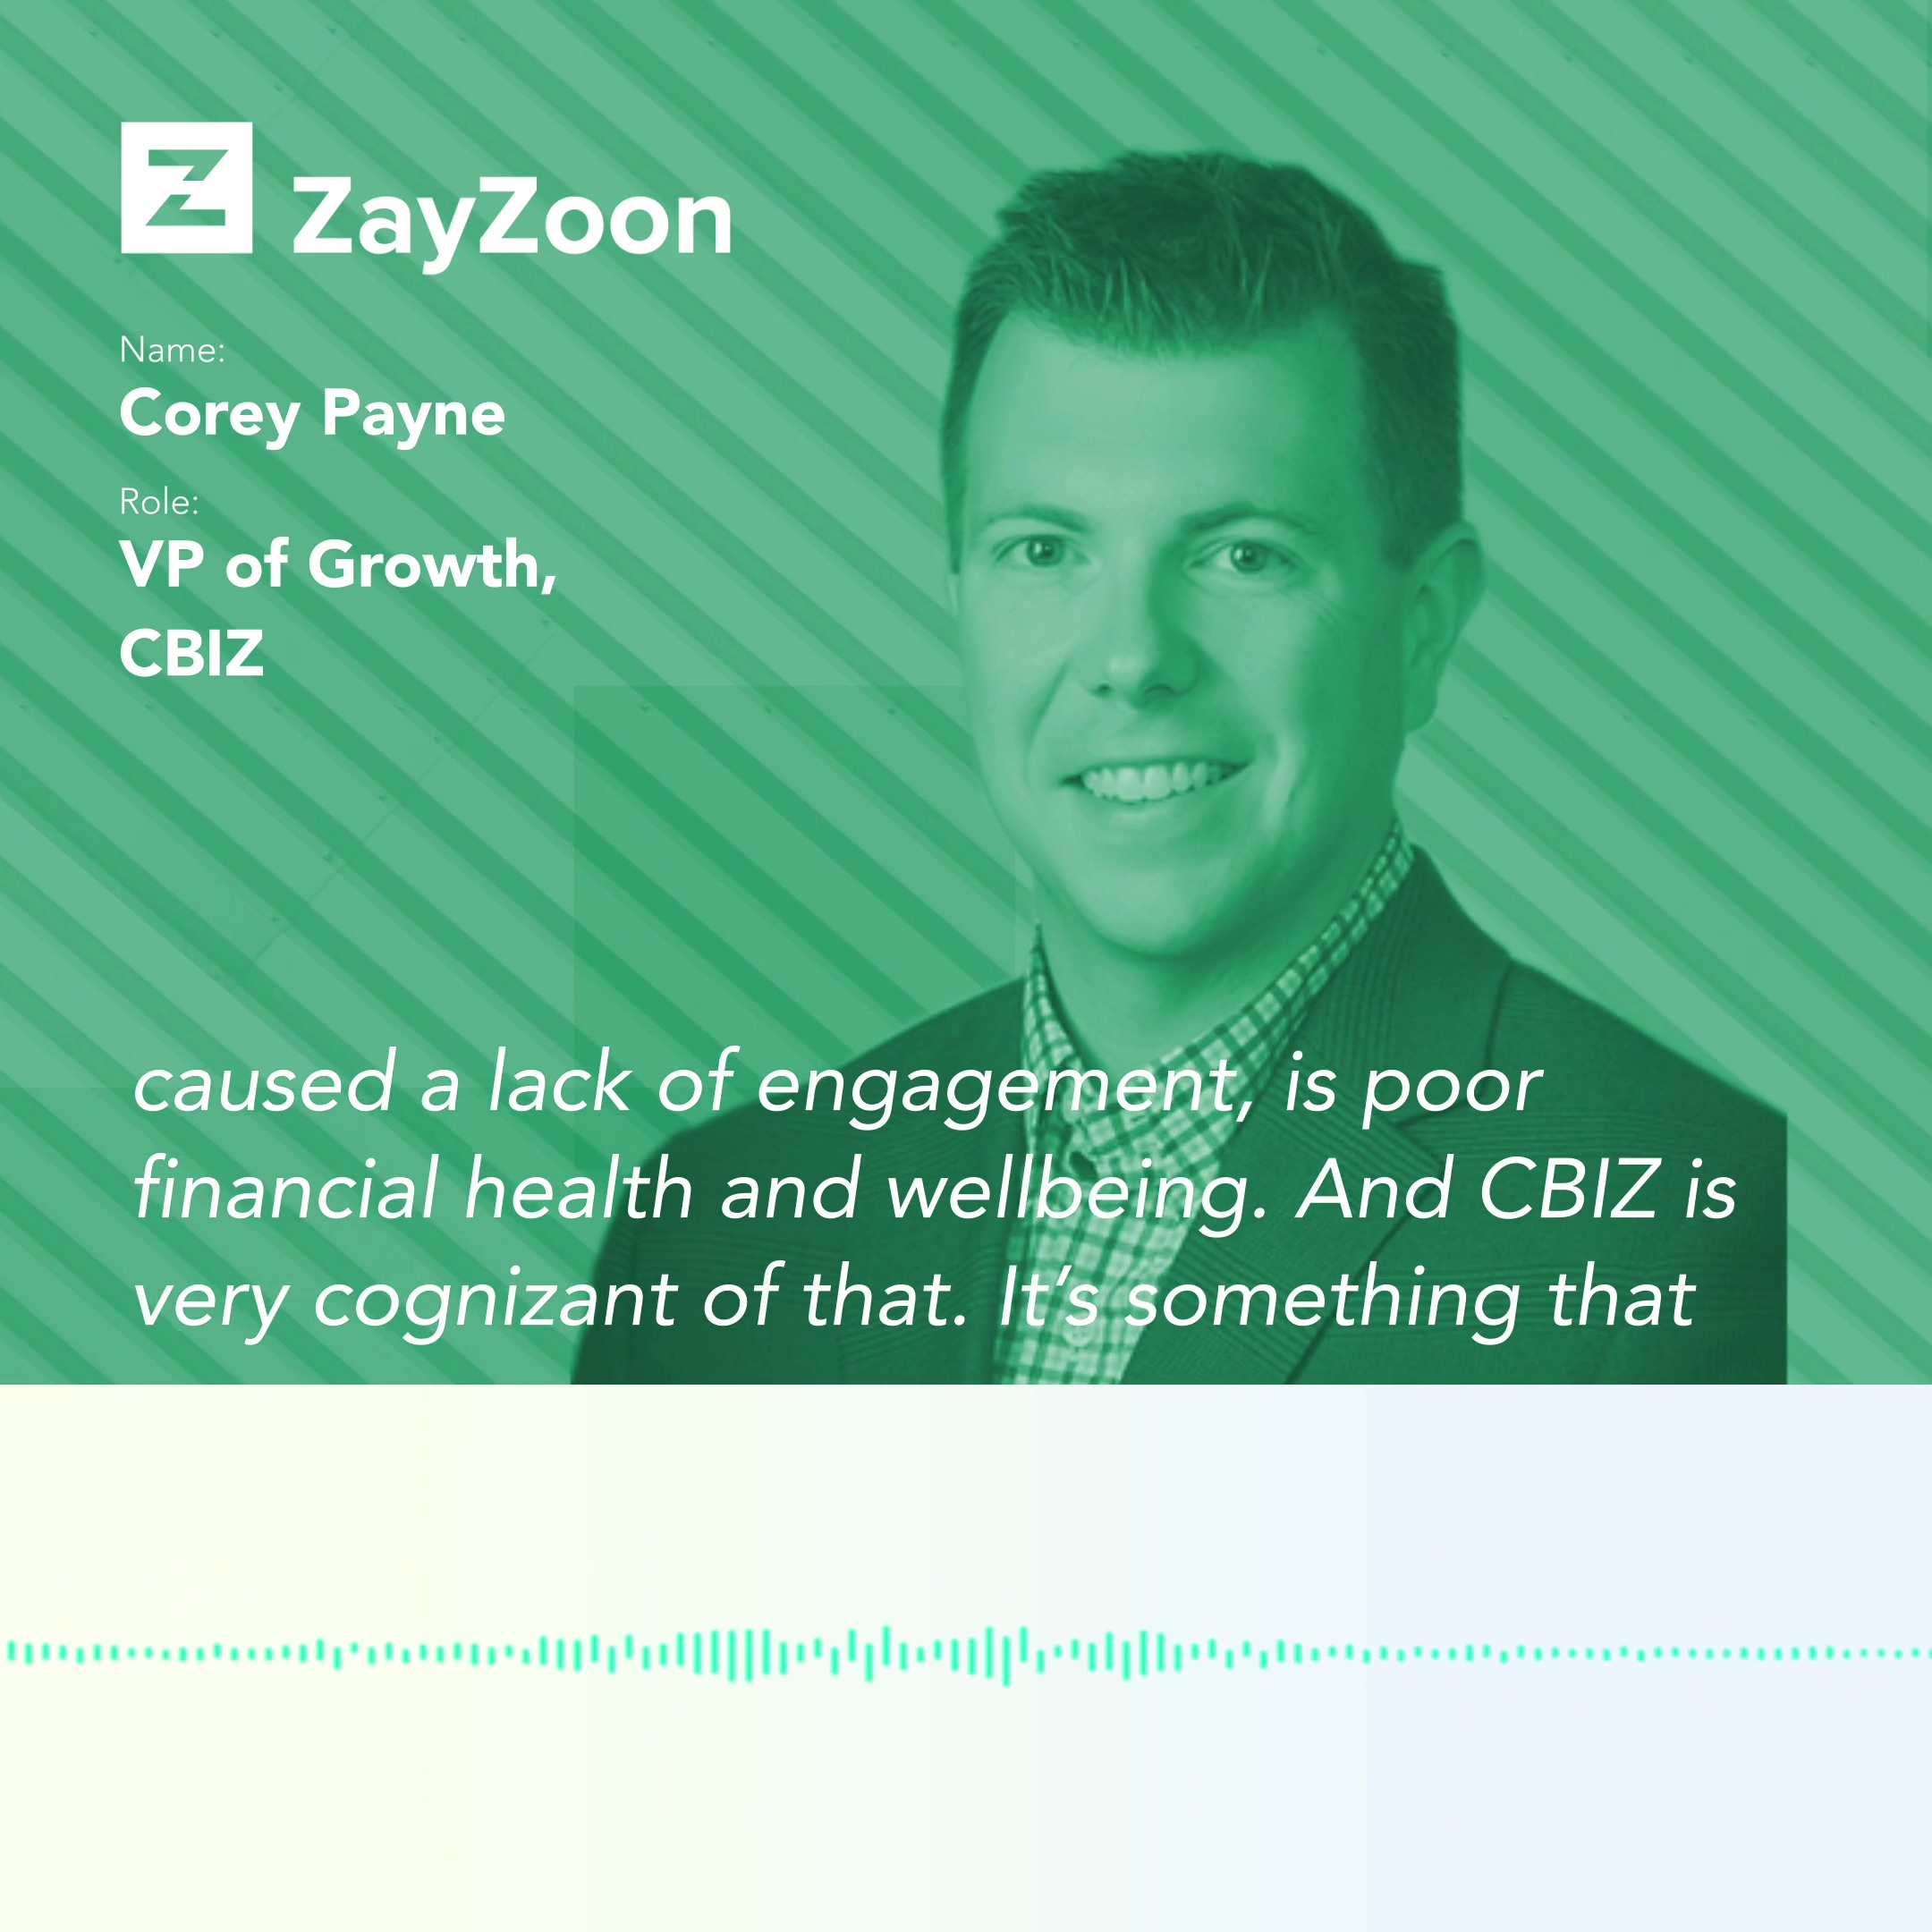 CBIZ Partnership w ZayZoon